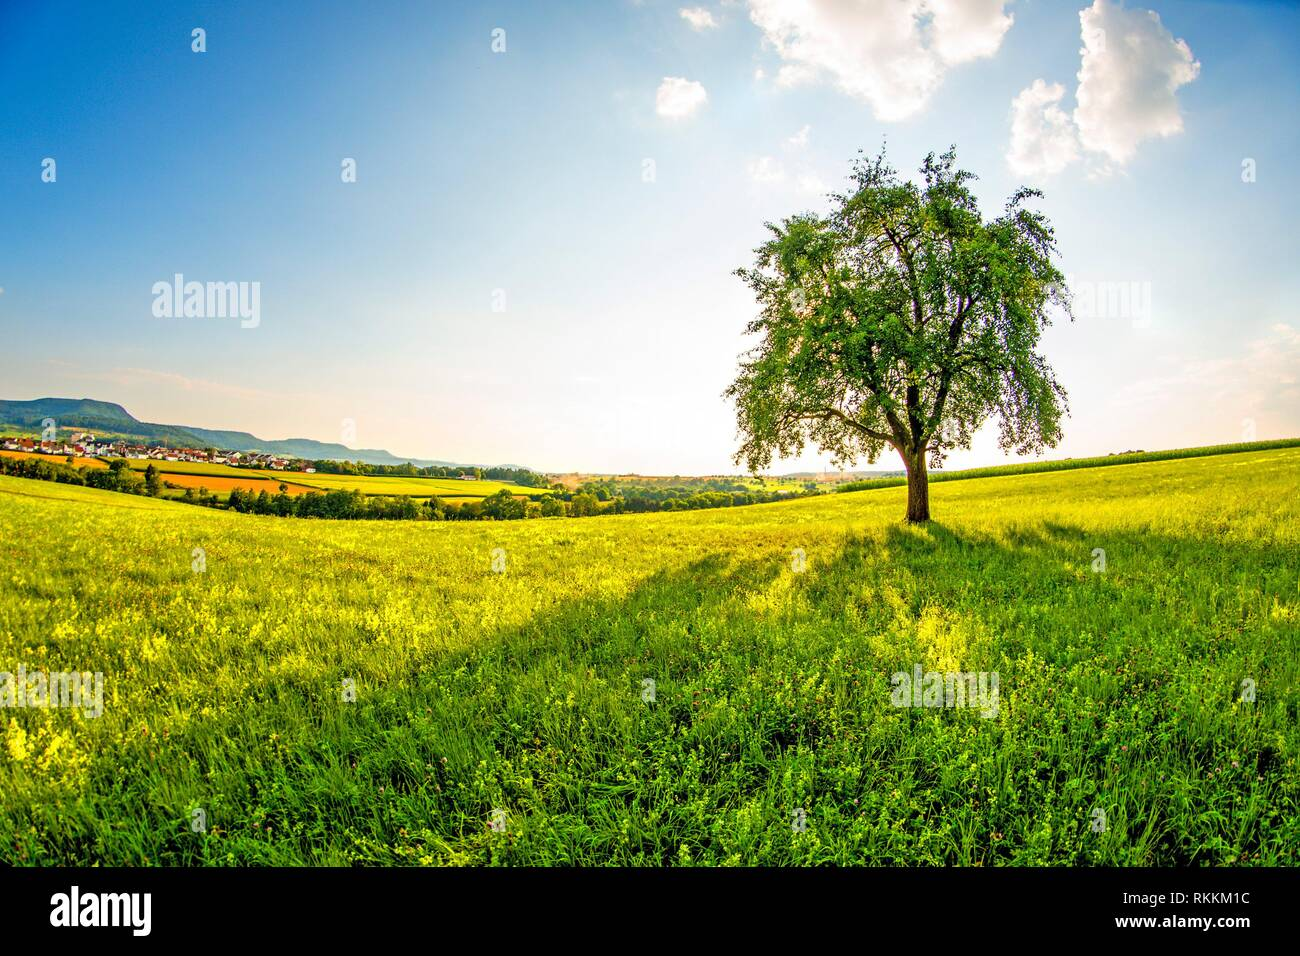 landscape with meadow, tree and view to the German highlands Swabian Alb. - Stock Image